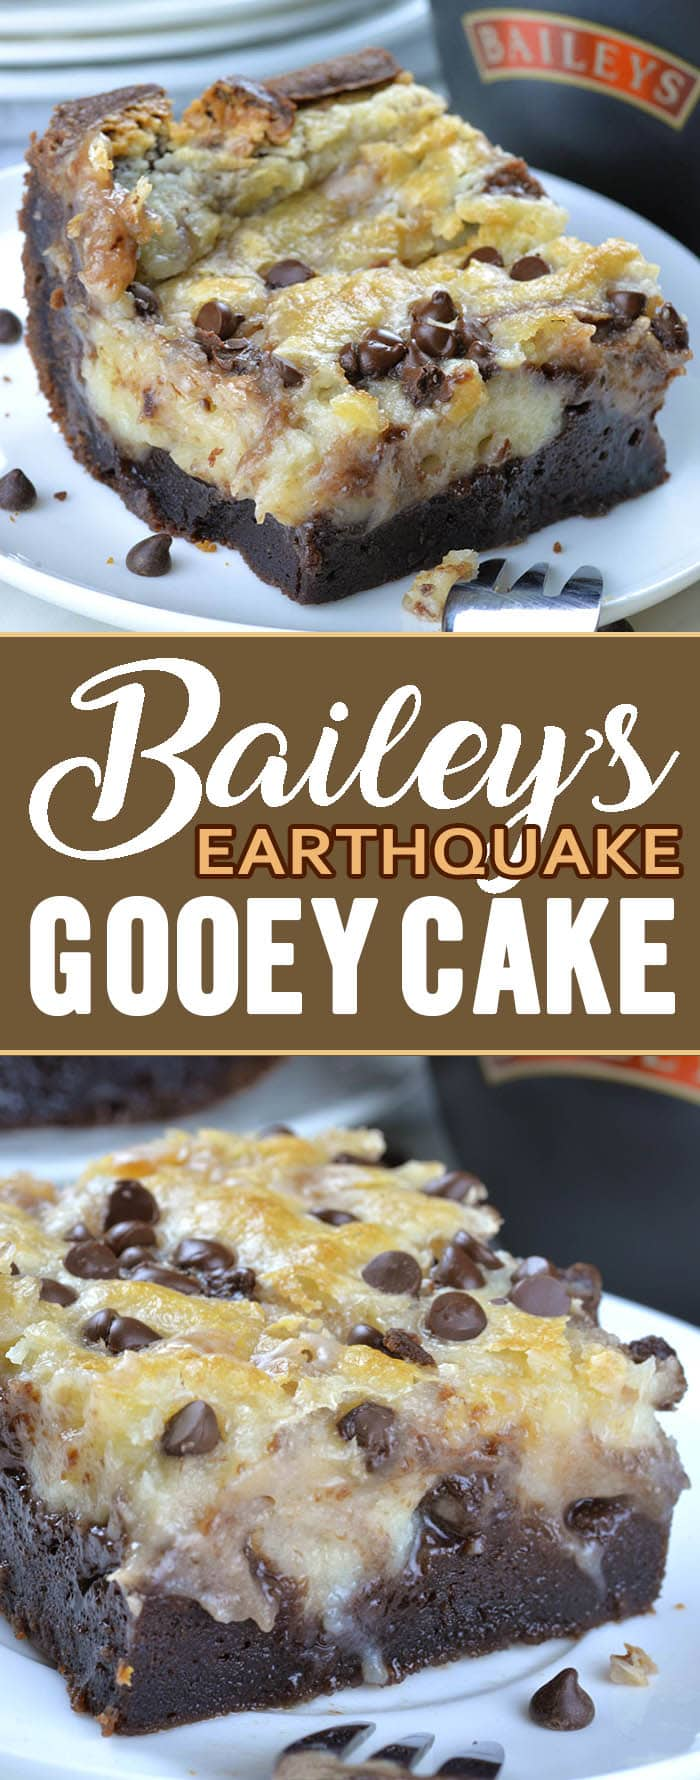 Baileys Earthquake Cake is delicious, gooey chocolate cake, loaded with Bailey's Irish Cream liqueur in every single bite. This decadent cake is great St. Patrick's Day dessert.